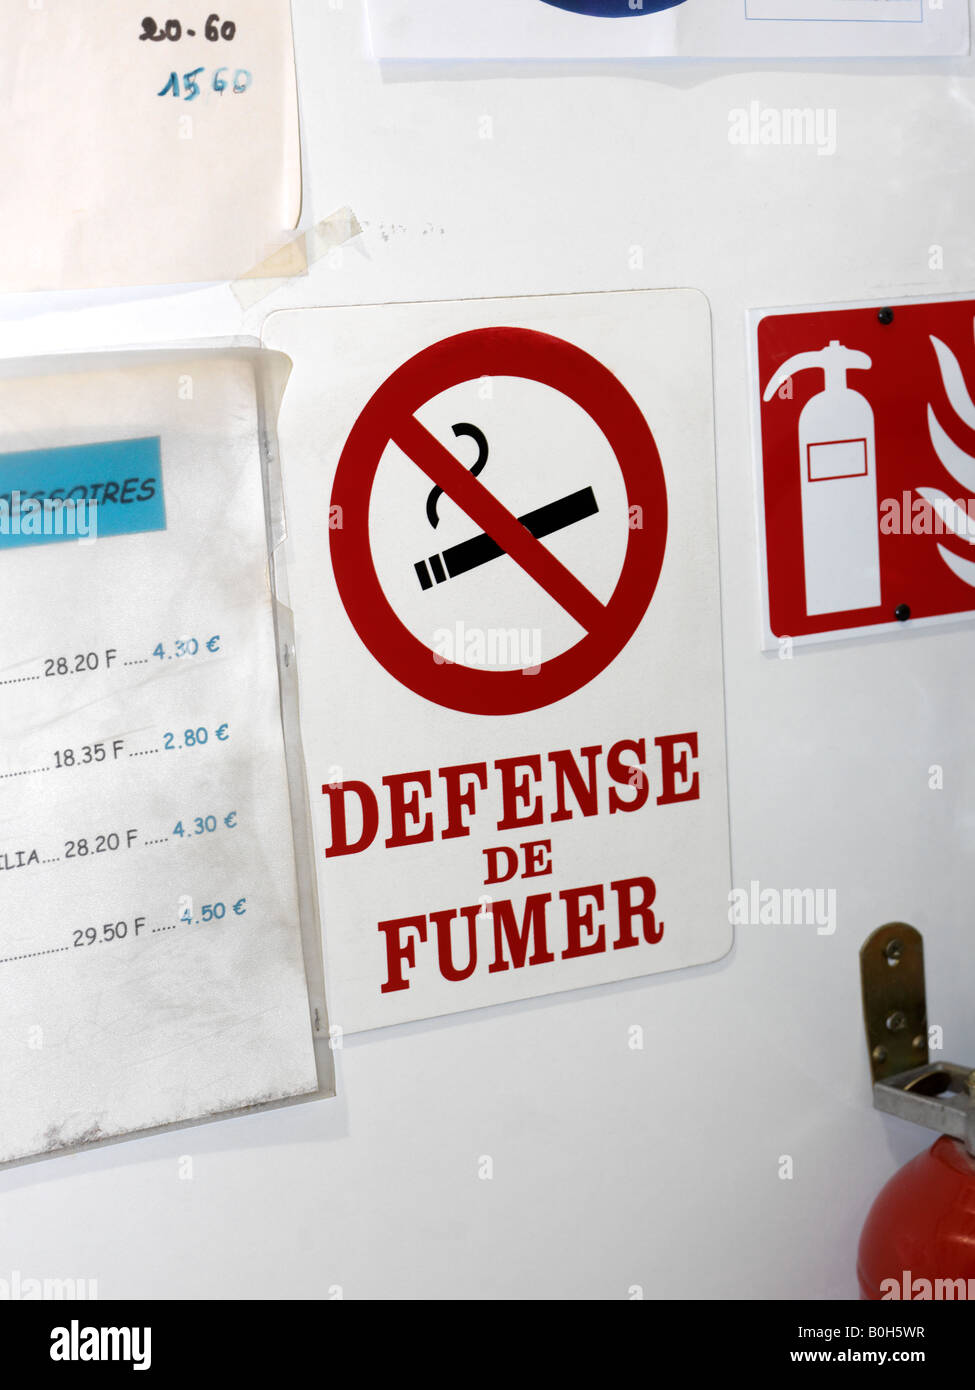 Defense De Fumer Stock Photos Defense De Fumer Stock Images Alamy